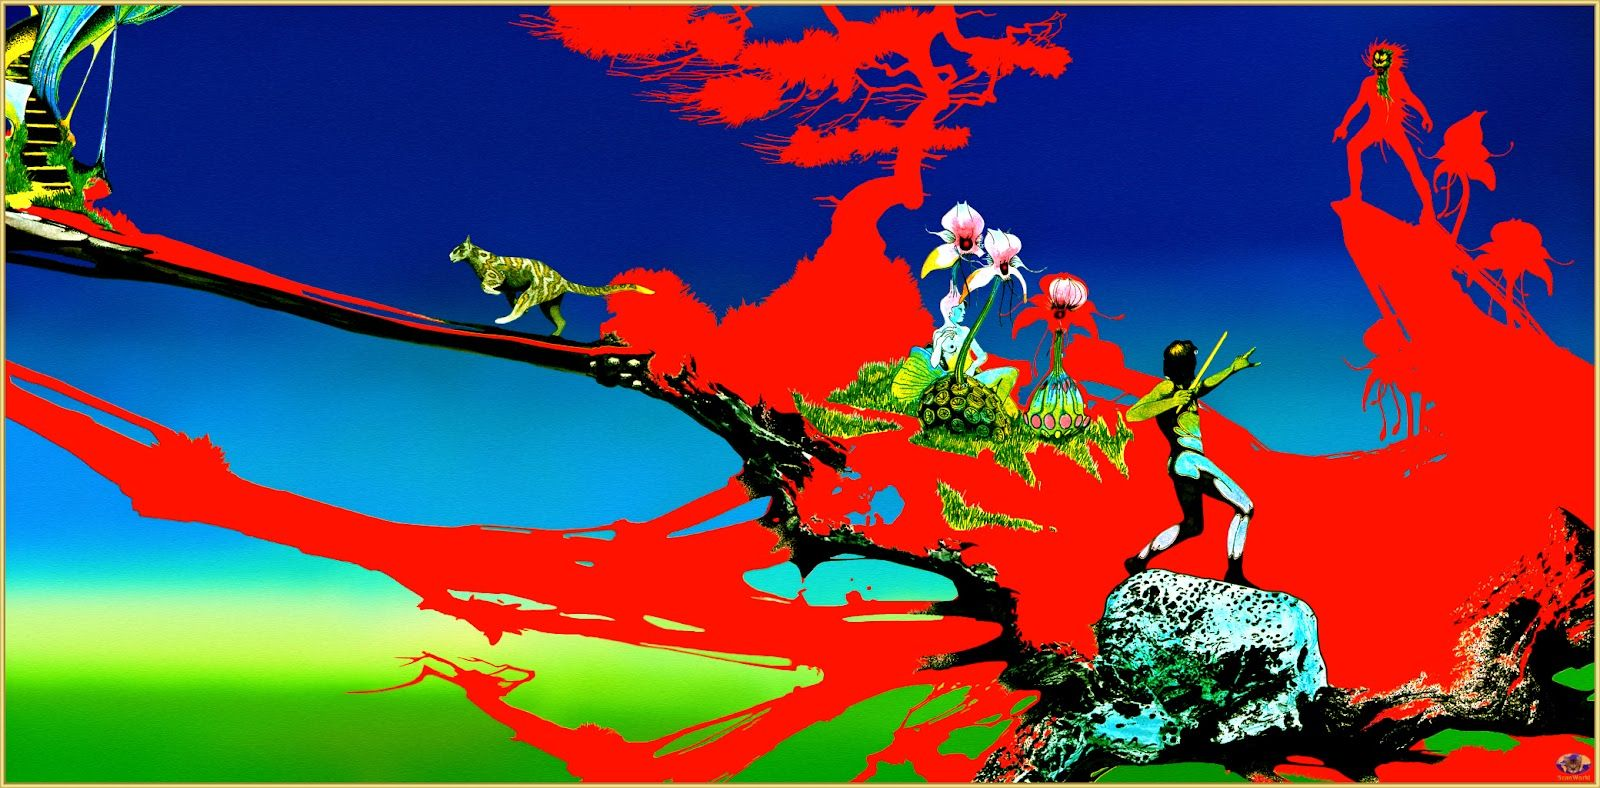 The Magician S Birthday A Roger Dean Painting For A Uriah Heep Album Roger Dean 70s Sci Fi Art Album Art